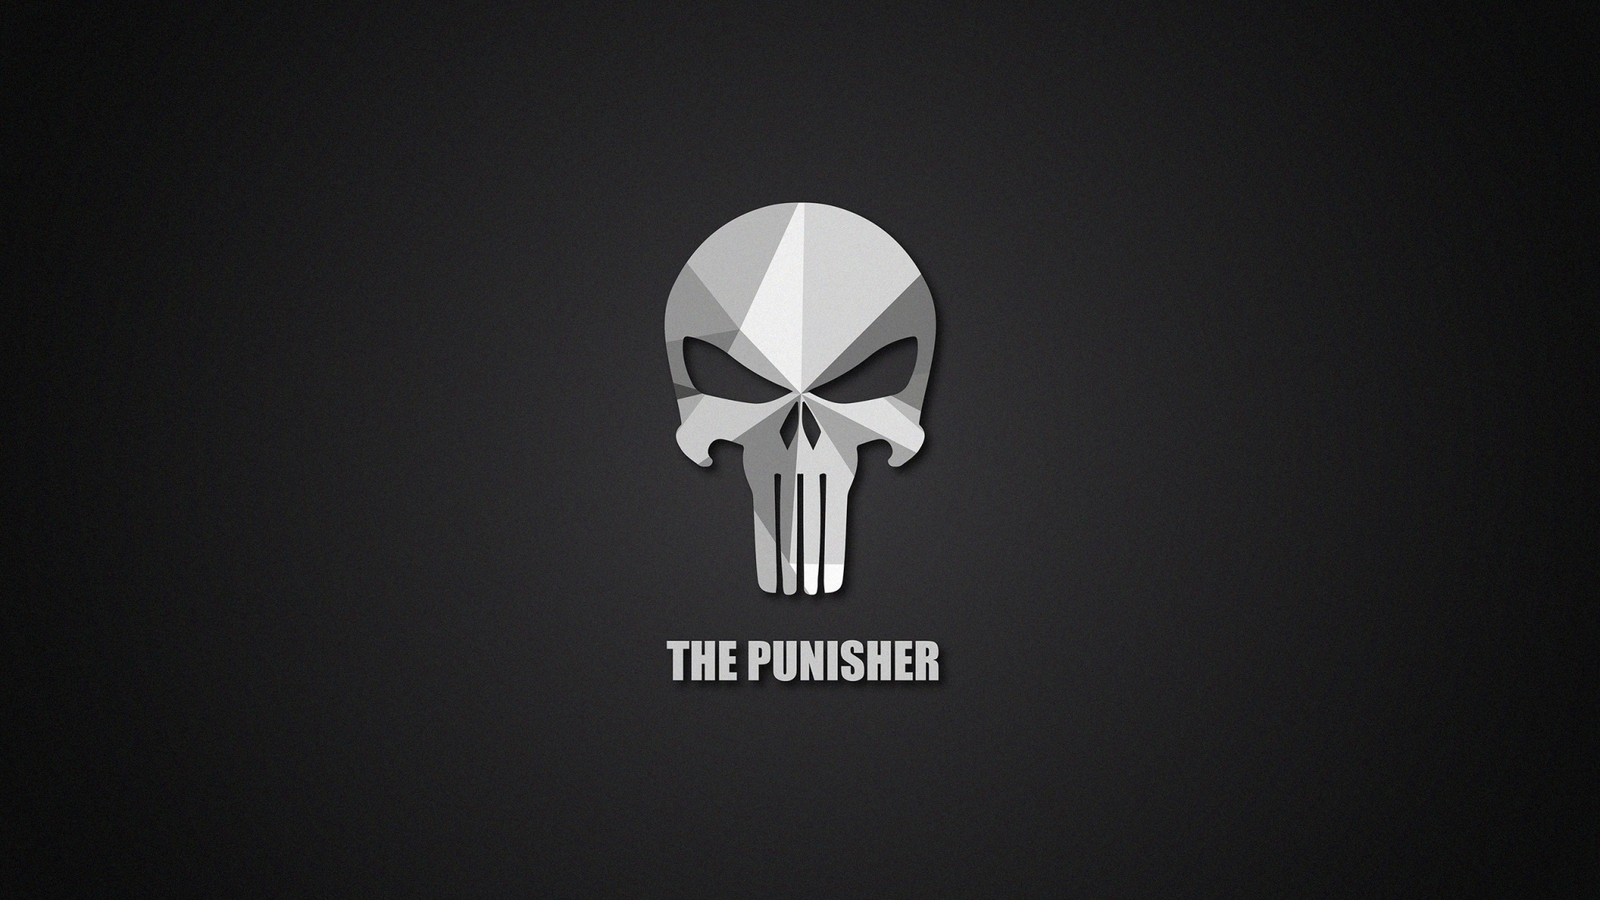 1600x900 The Punisher Material Logo 1600x900 Resolution Hd 4k